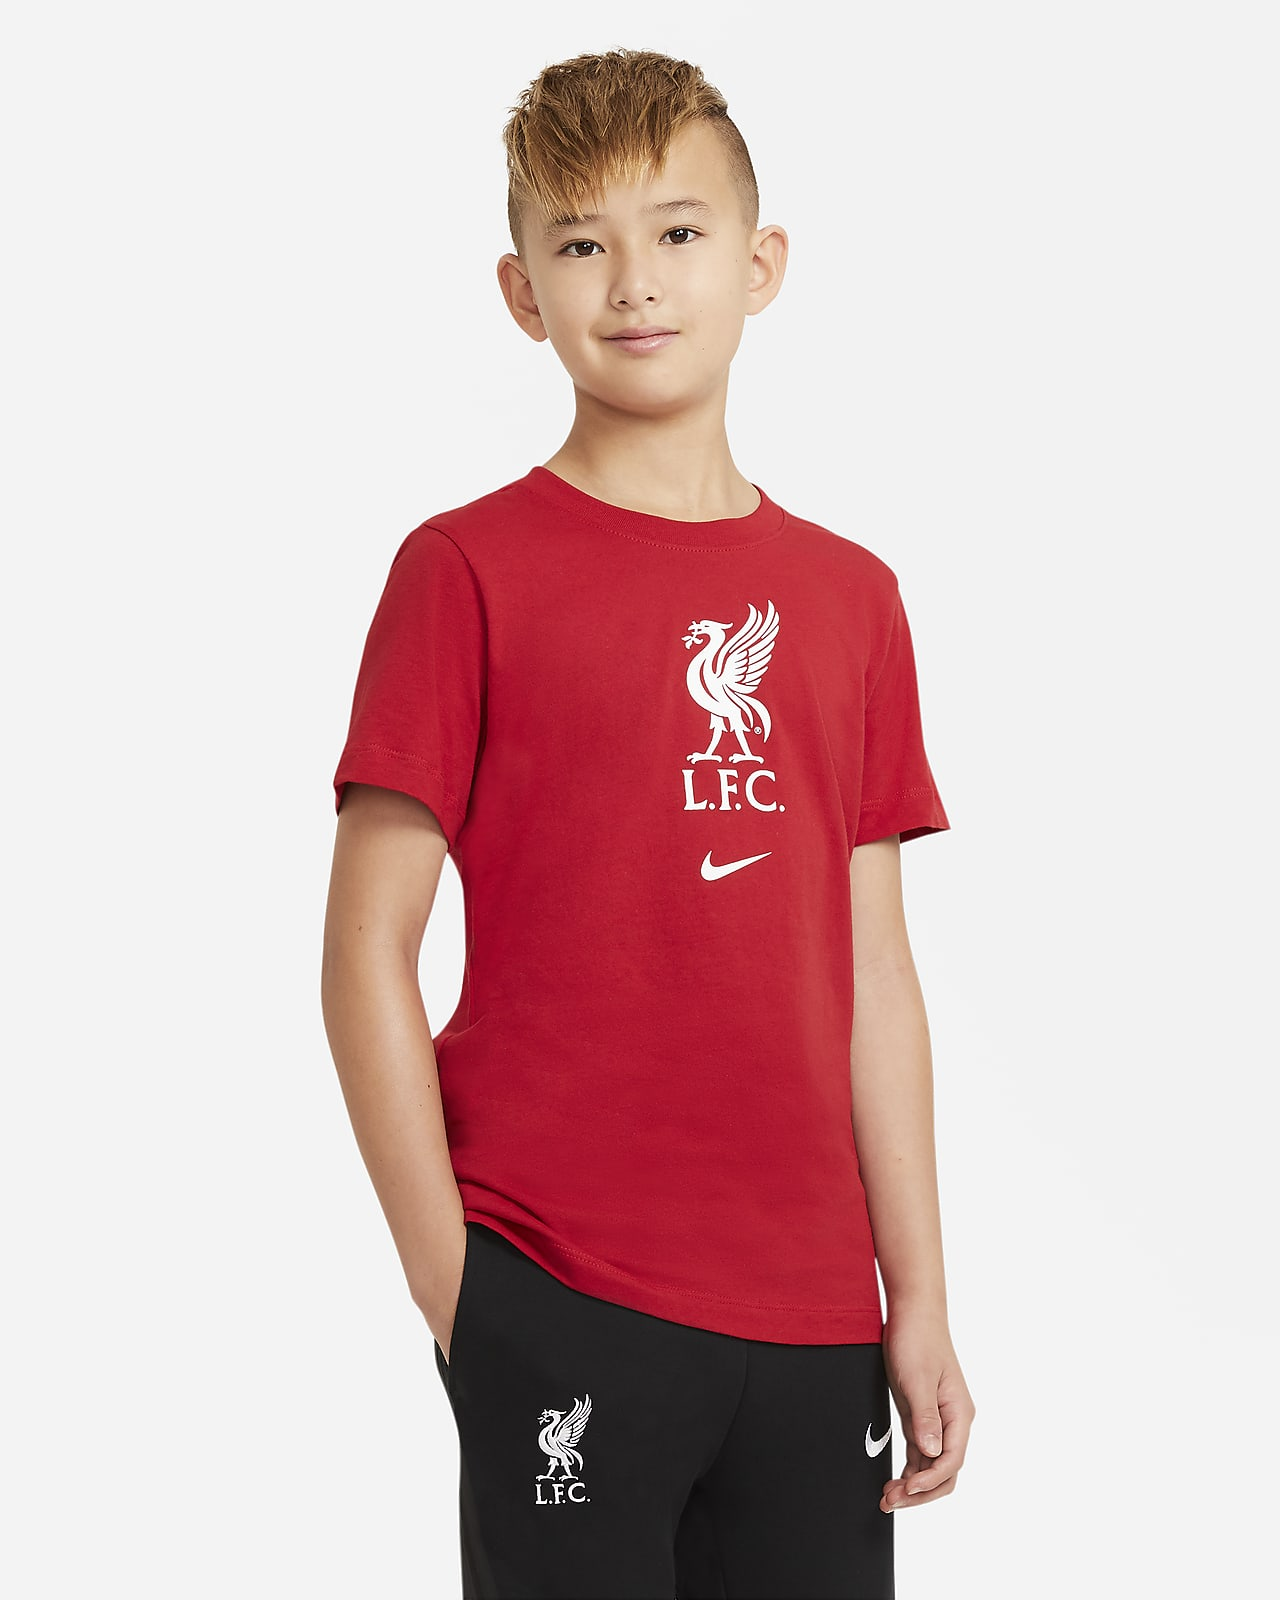 Liverpool F.C. Older Kids' Football T-Shirt